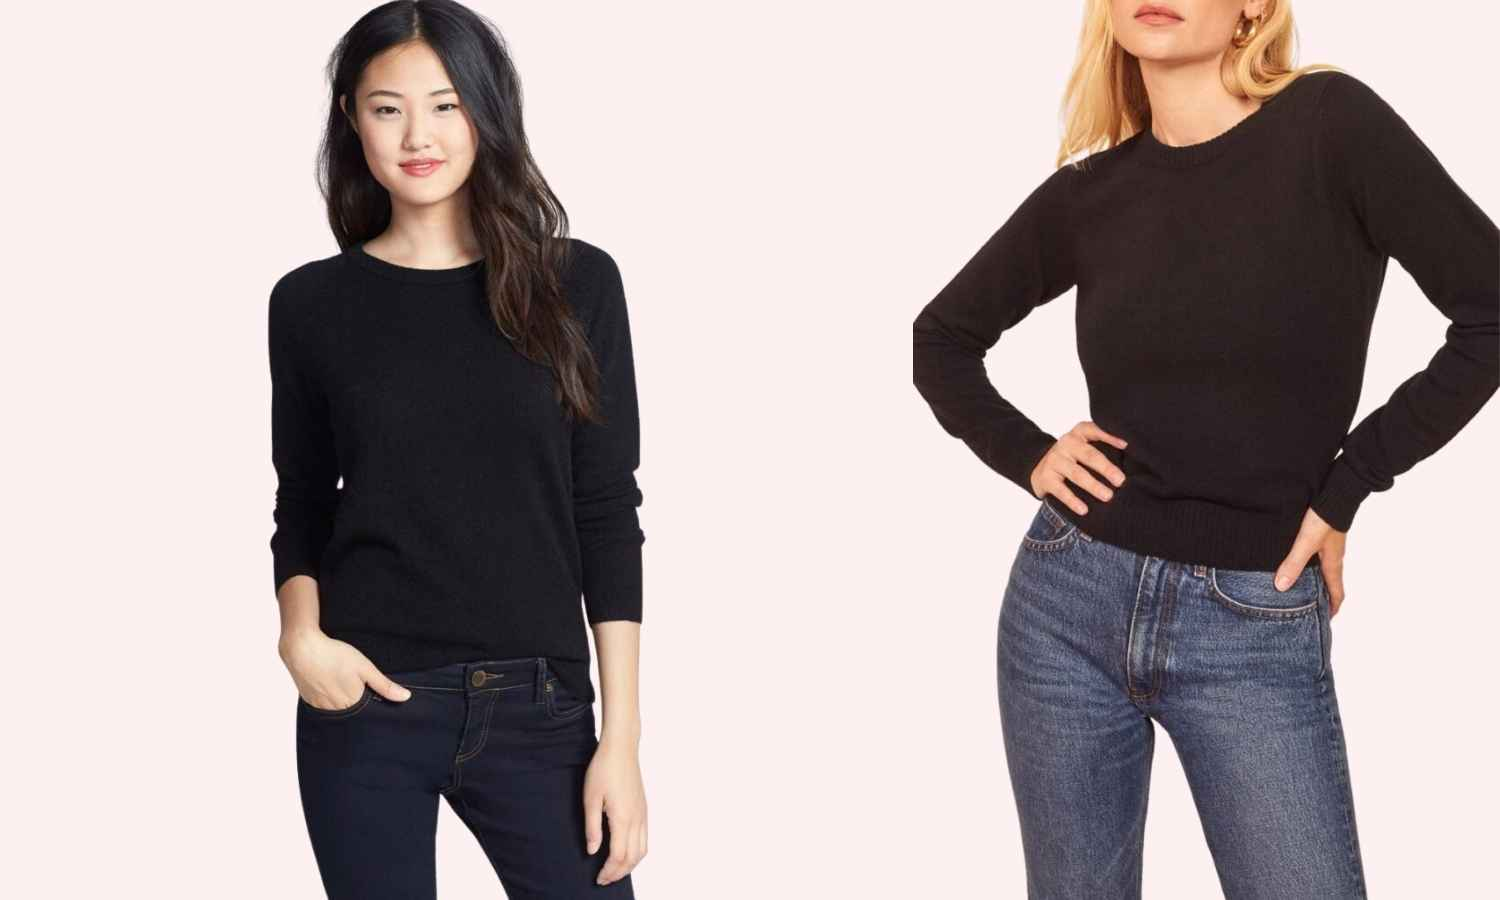 15 Best Cashmere Sweaters to Stay Preppy and Warm